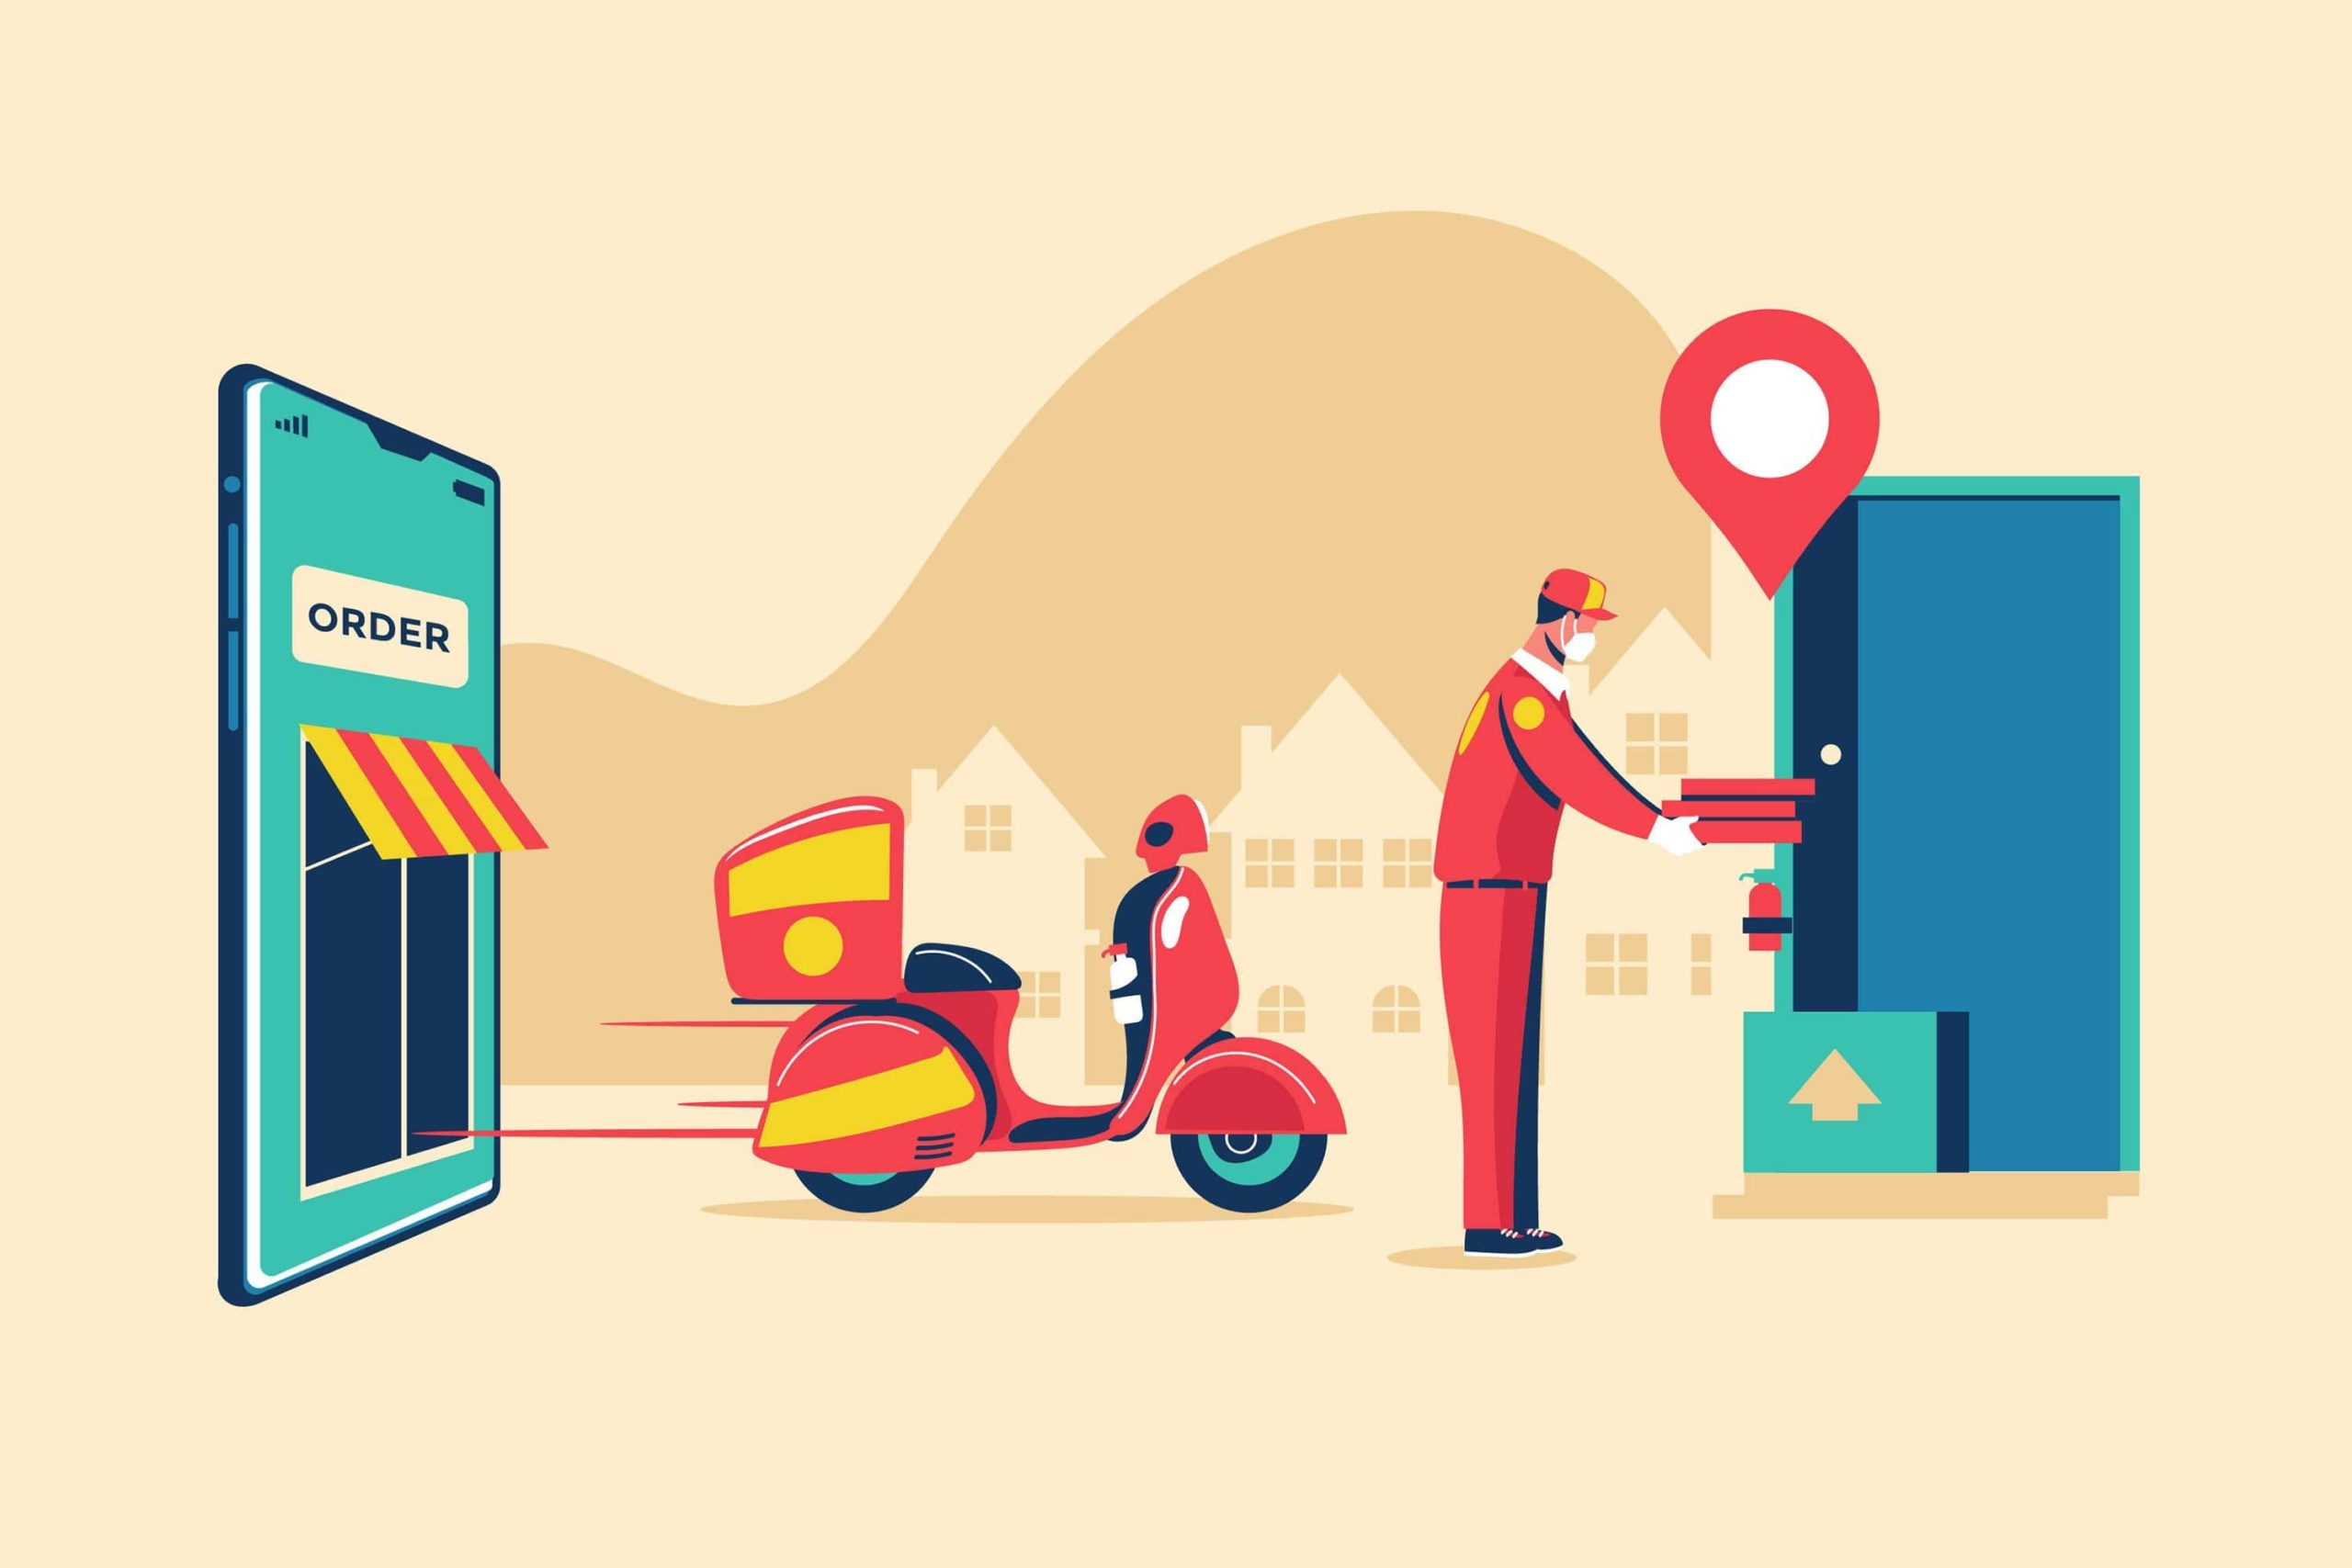 How to Add a New Shipping Carrier in Shopify